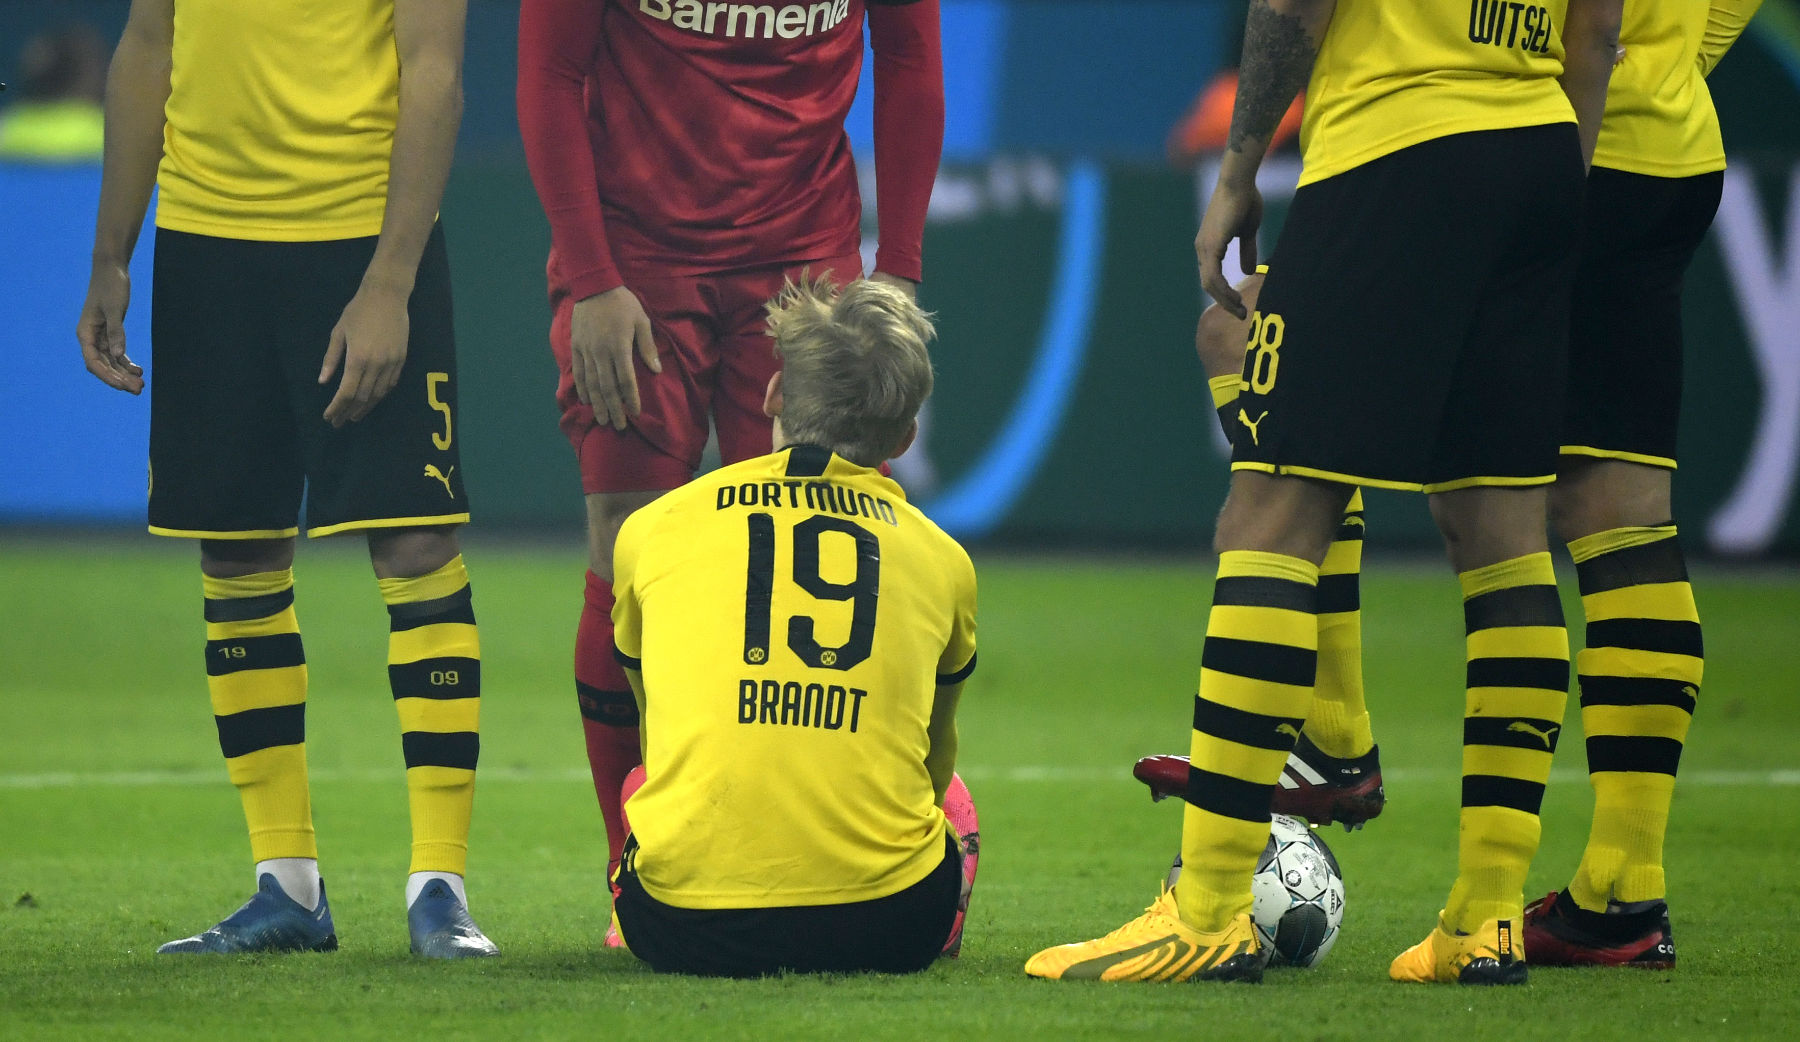 dortmund vs psg - photo #14